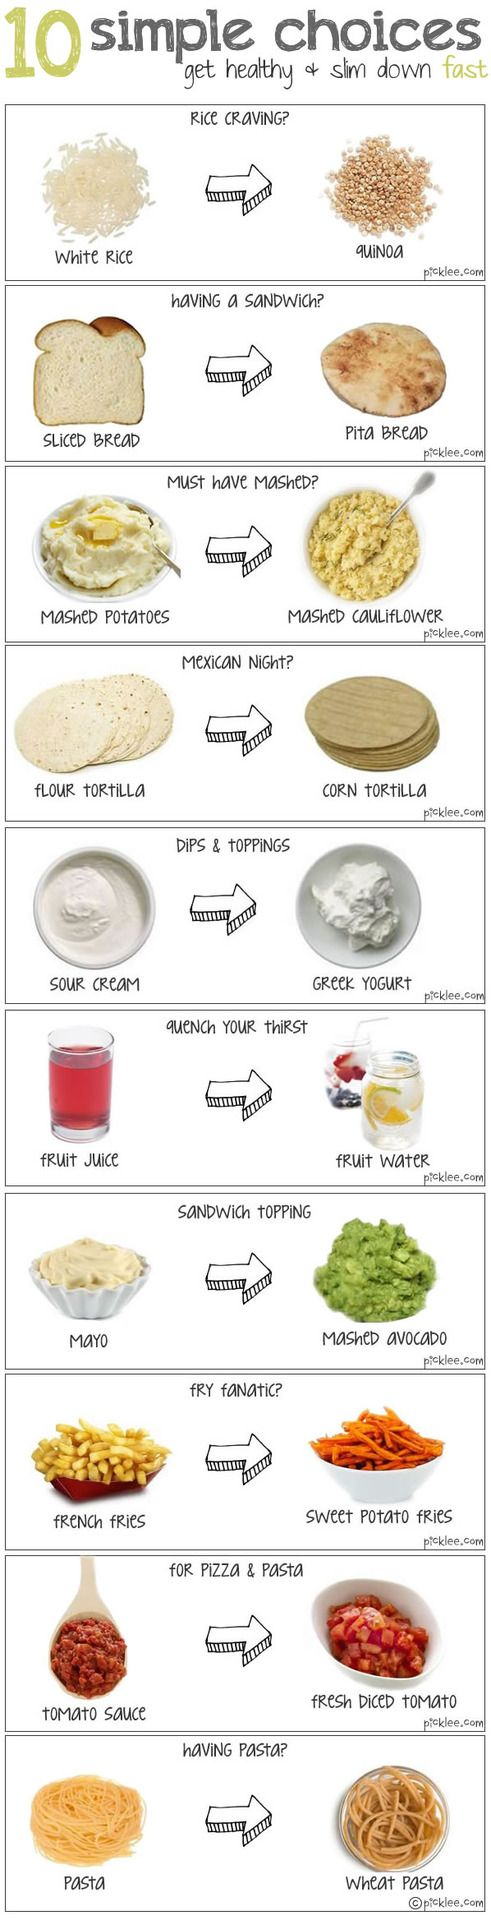 Simple swaps. Mitzi's modification: whole wheat pita or sandwich thins.